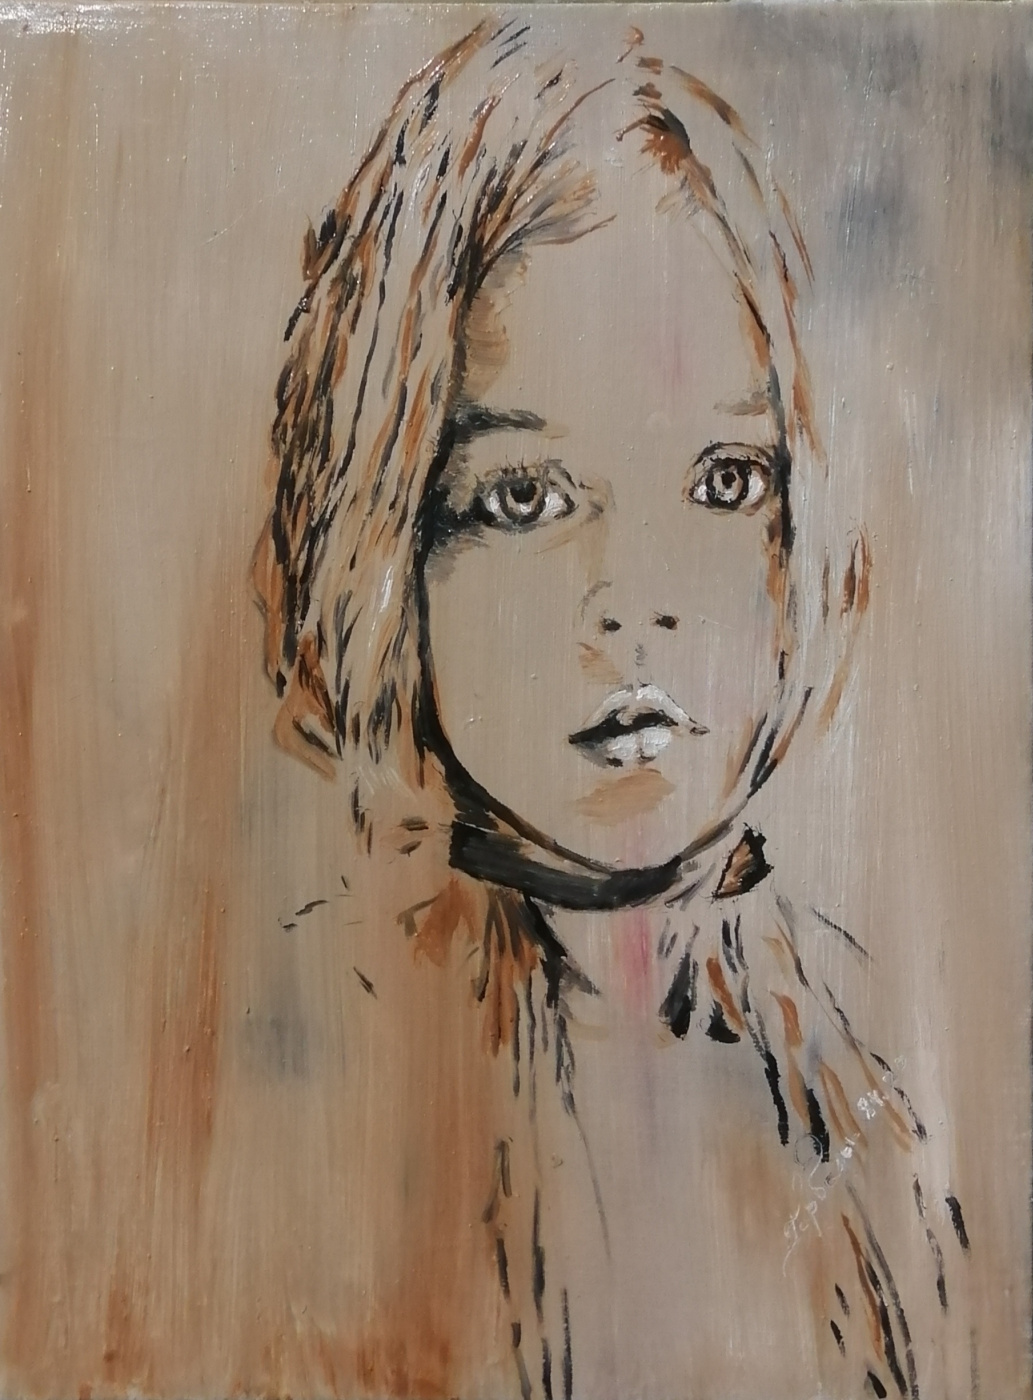 Michael. S Garbaly. A child in ash.